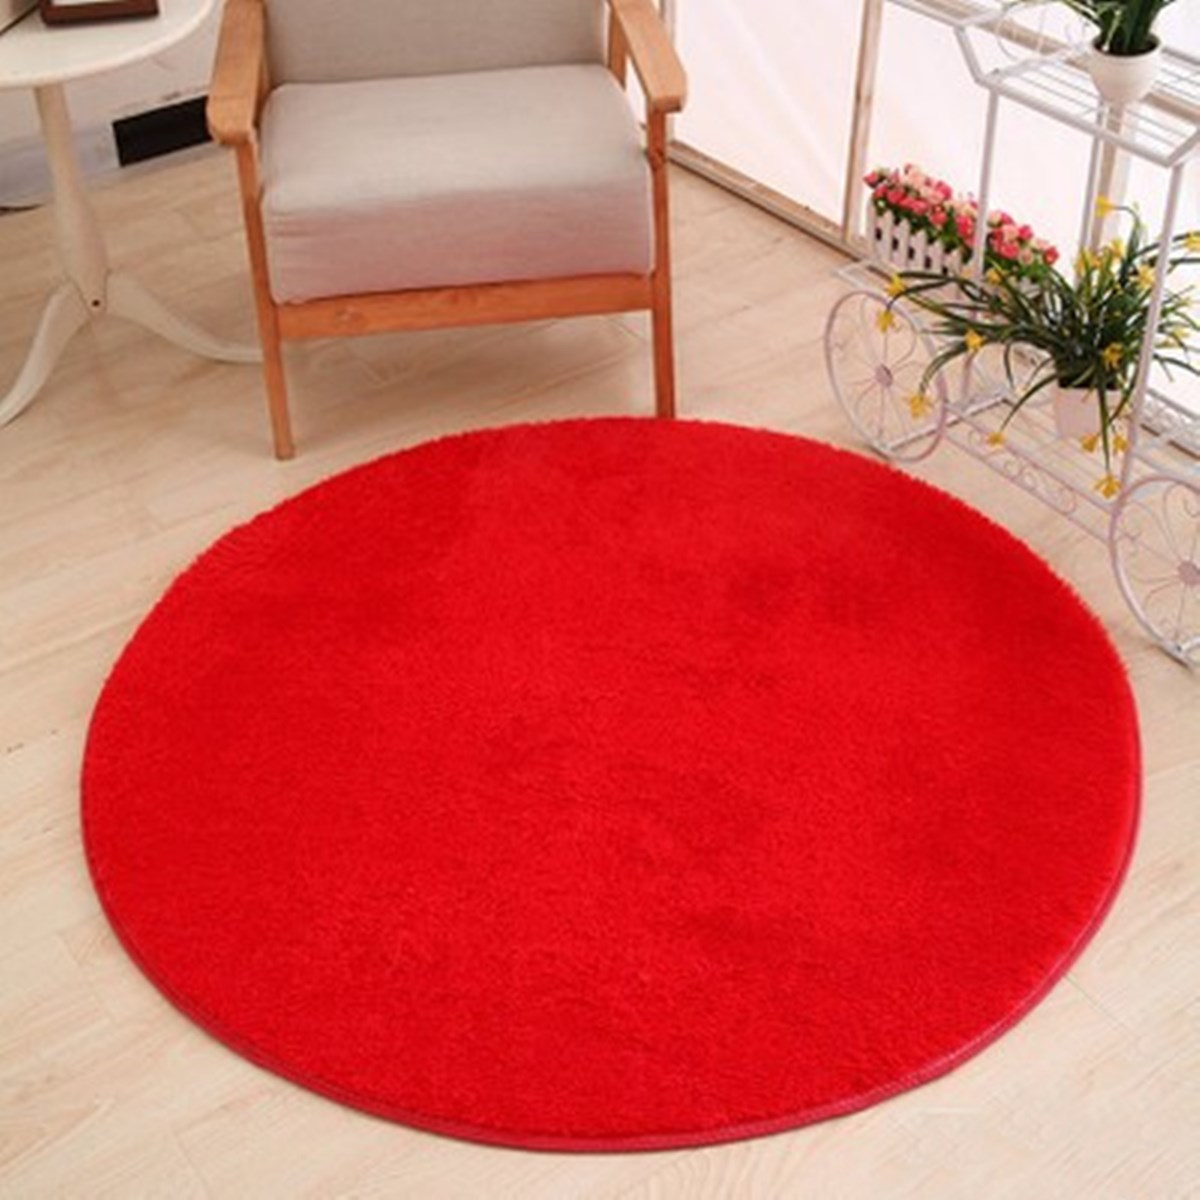 Fashion Red Floor Mats Modern Shaggy Round Rugs Carpets Long Hair Faux Fur  Living Room Bedroom Carpet Rug For Home Yoga Mat In Carpet From Home U0026  Garden On ...